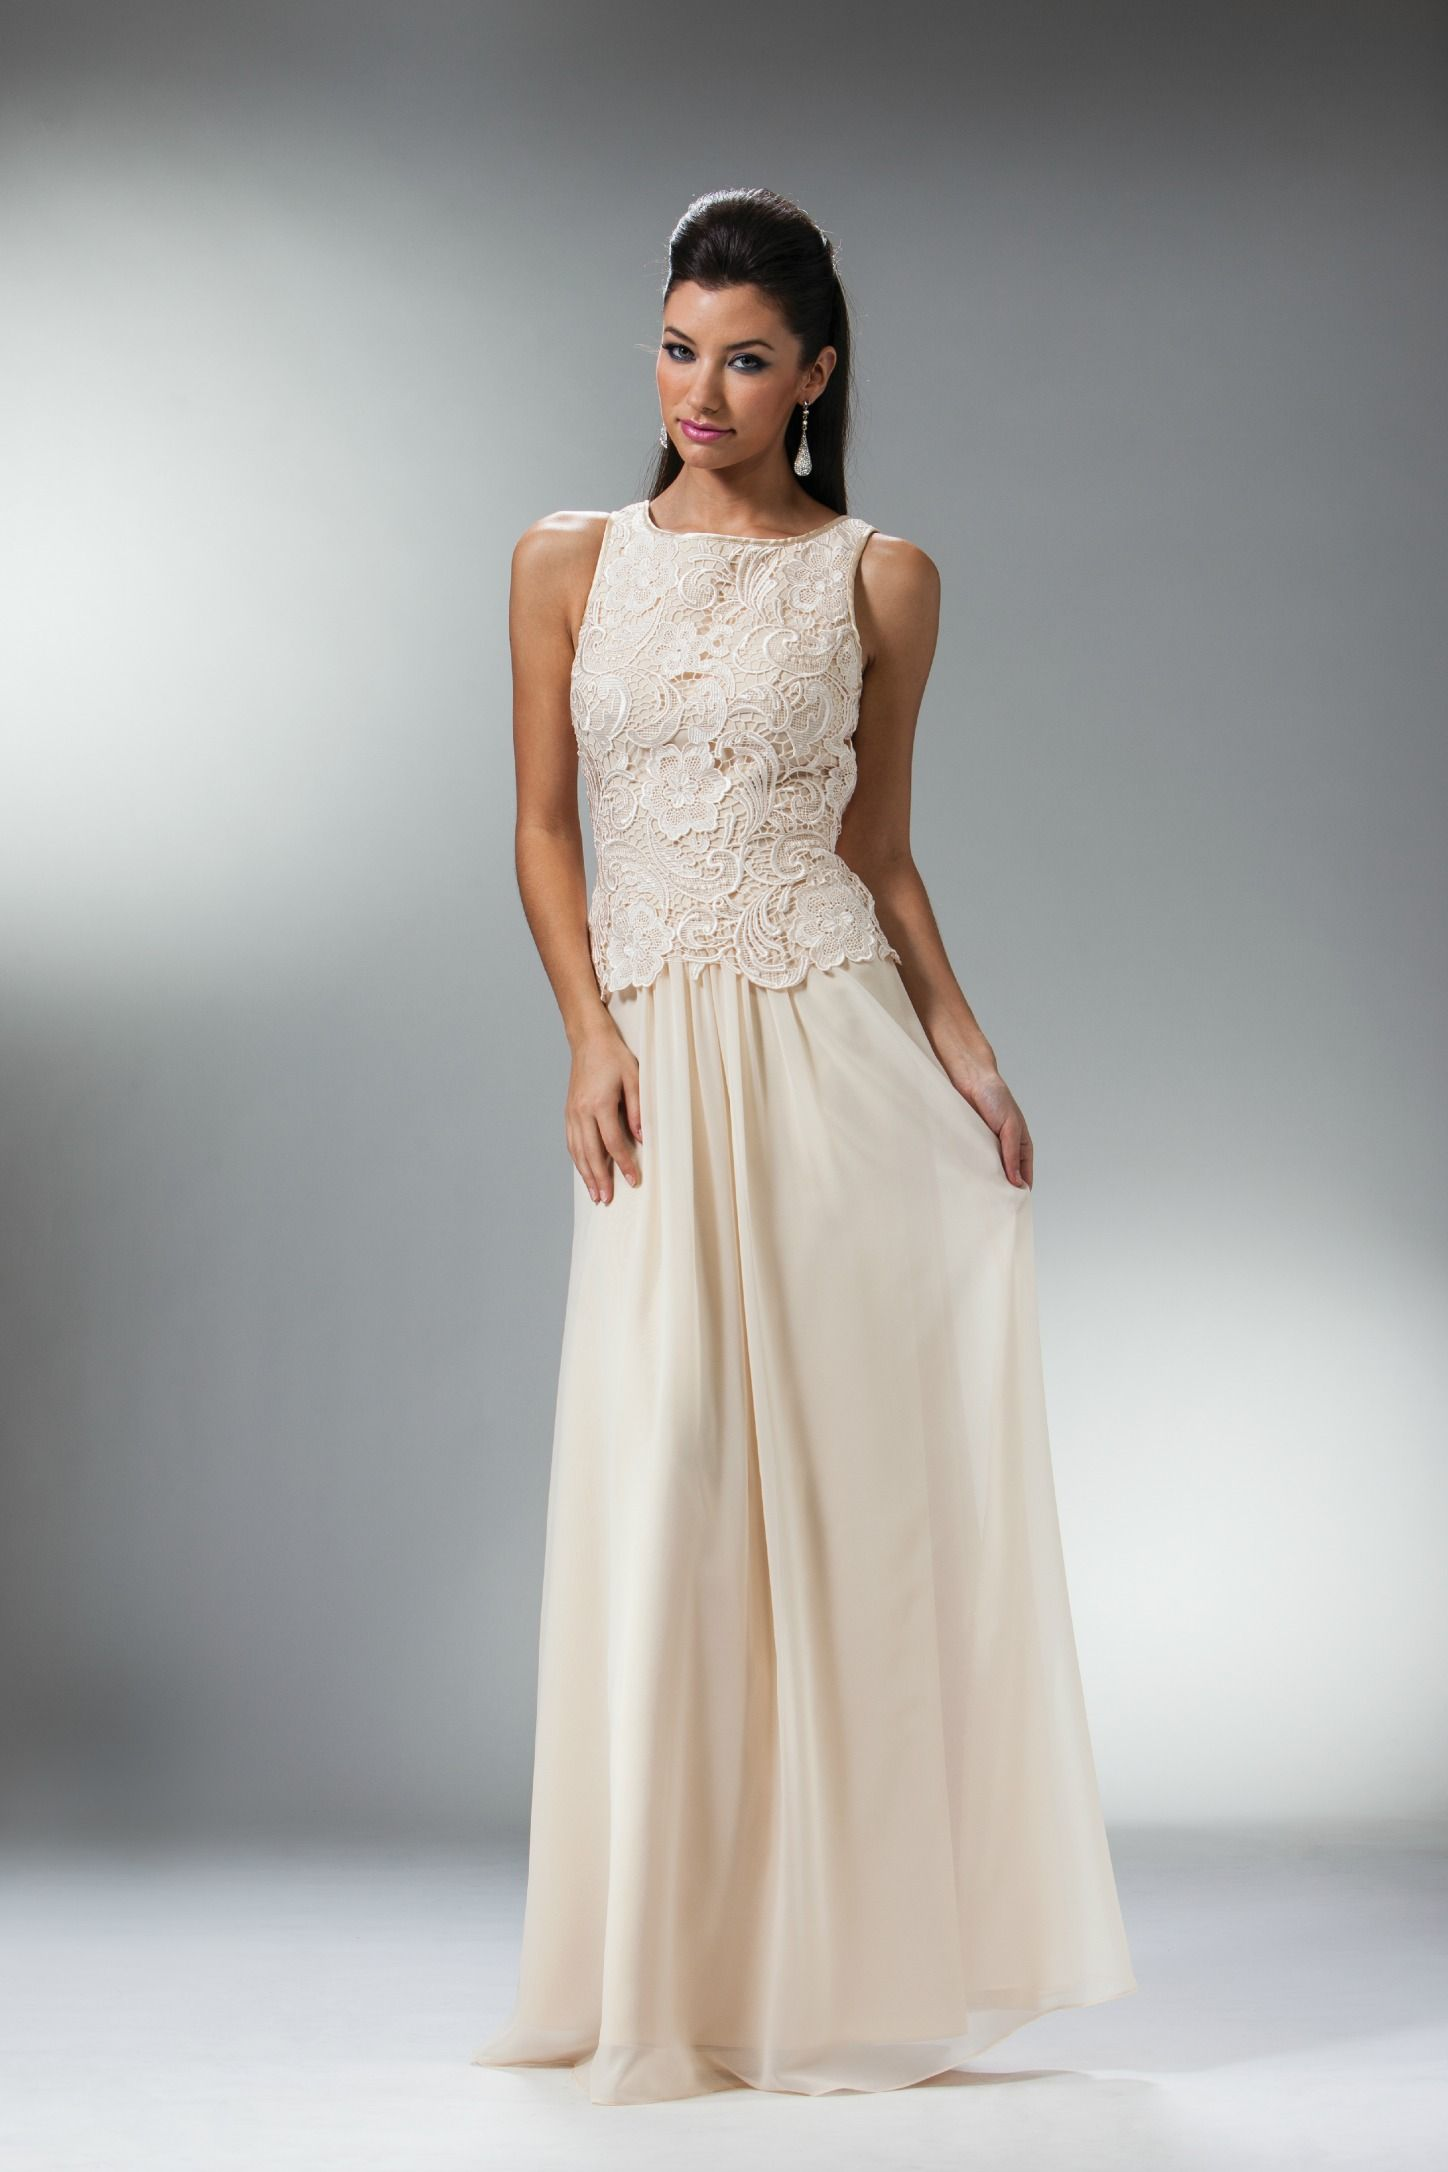 Modest Prom Dress : Modest Prom Dresses 3 | Modest Prom Dress ...